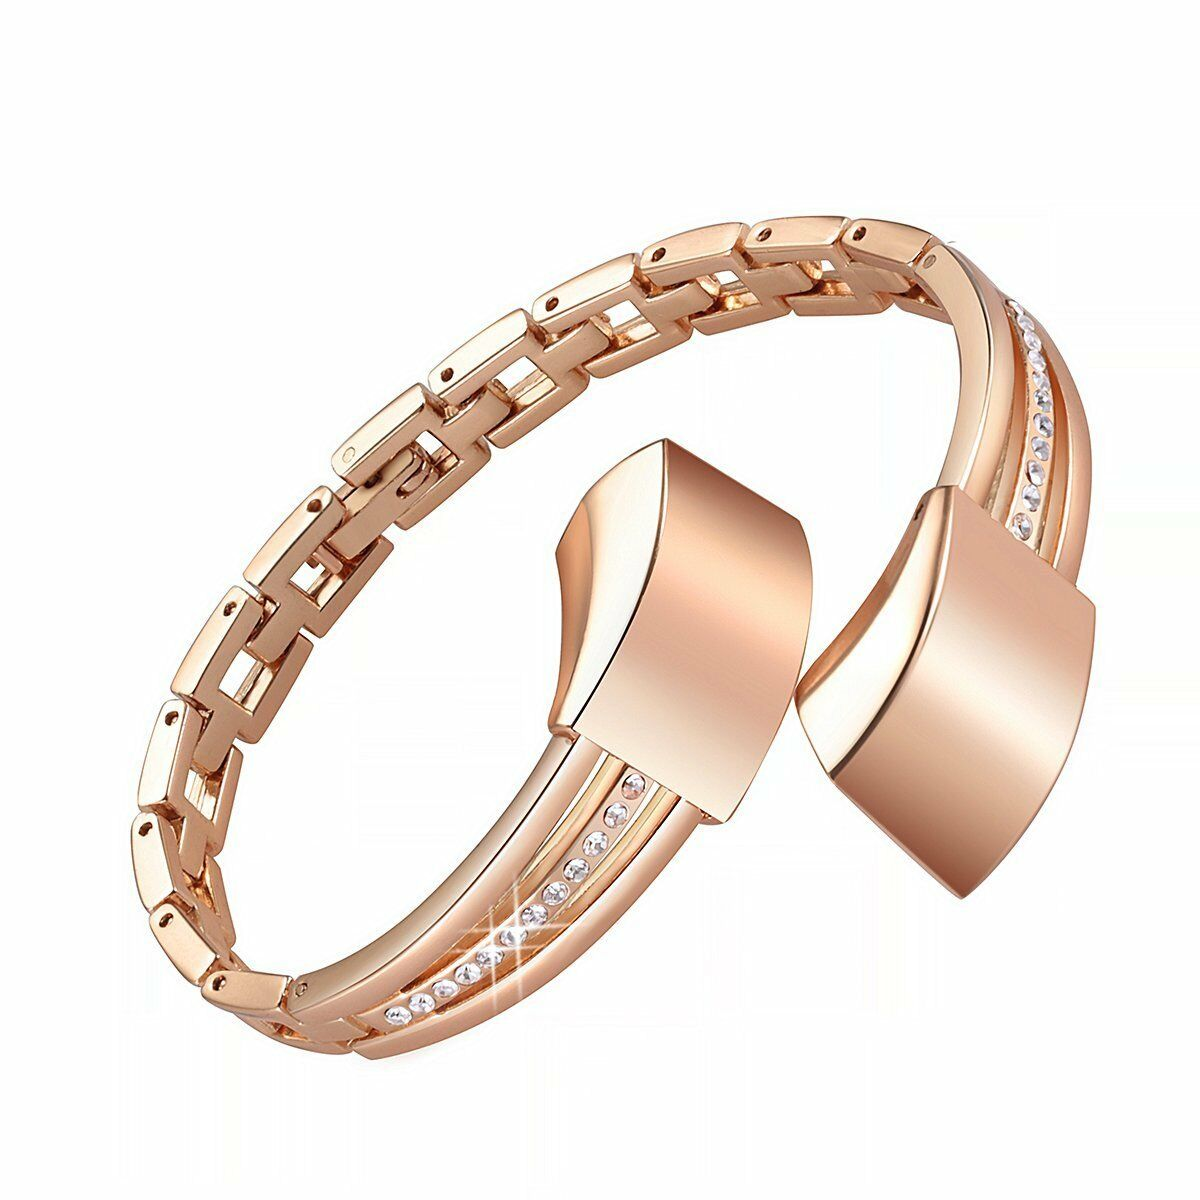 108b100b0 Good Rose Gold Metal Jewelry Bracelet for Fitbit ALTA Fitness Activity Band  for sale online | eBay